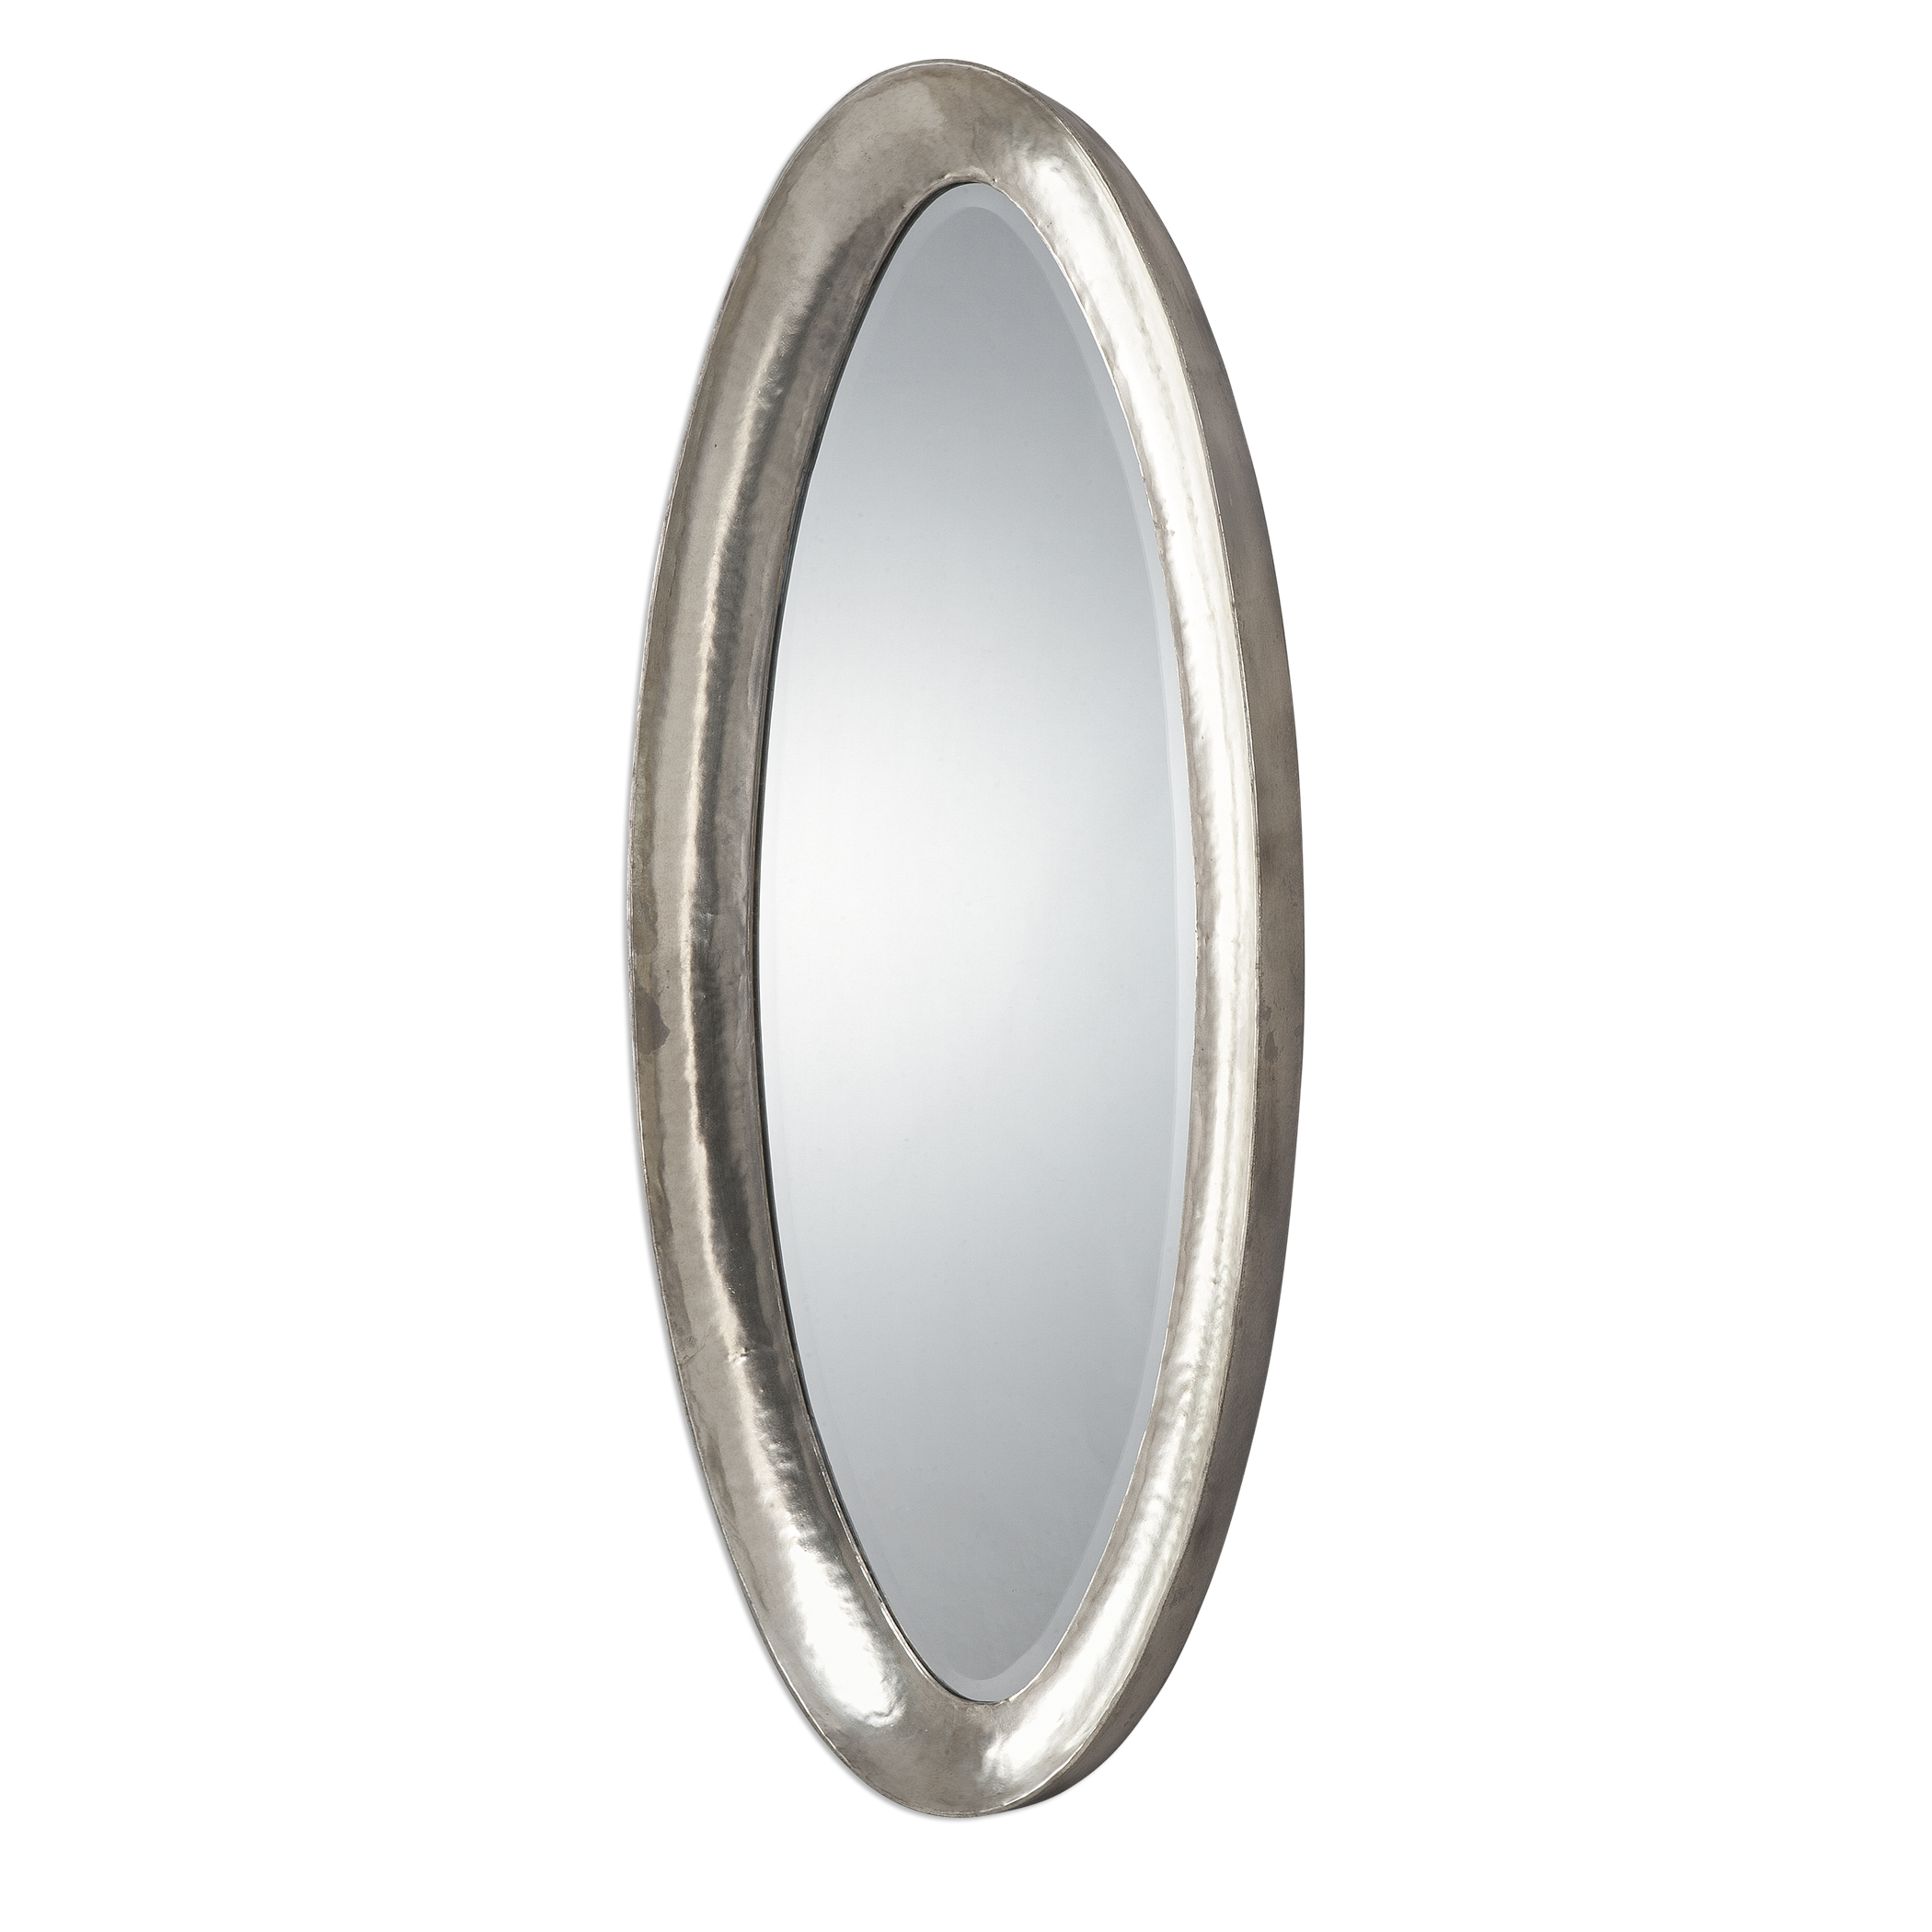 Uttermost Mirrors Copparo Silver Oval Mirror - Item Number: 12941